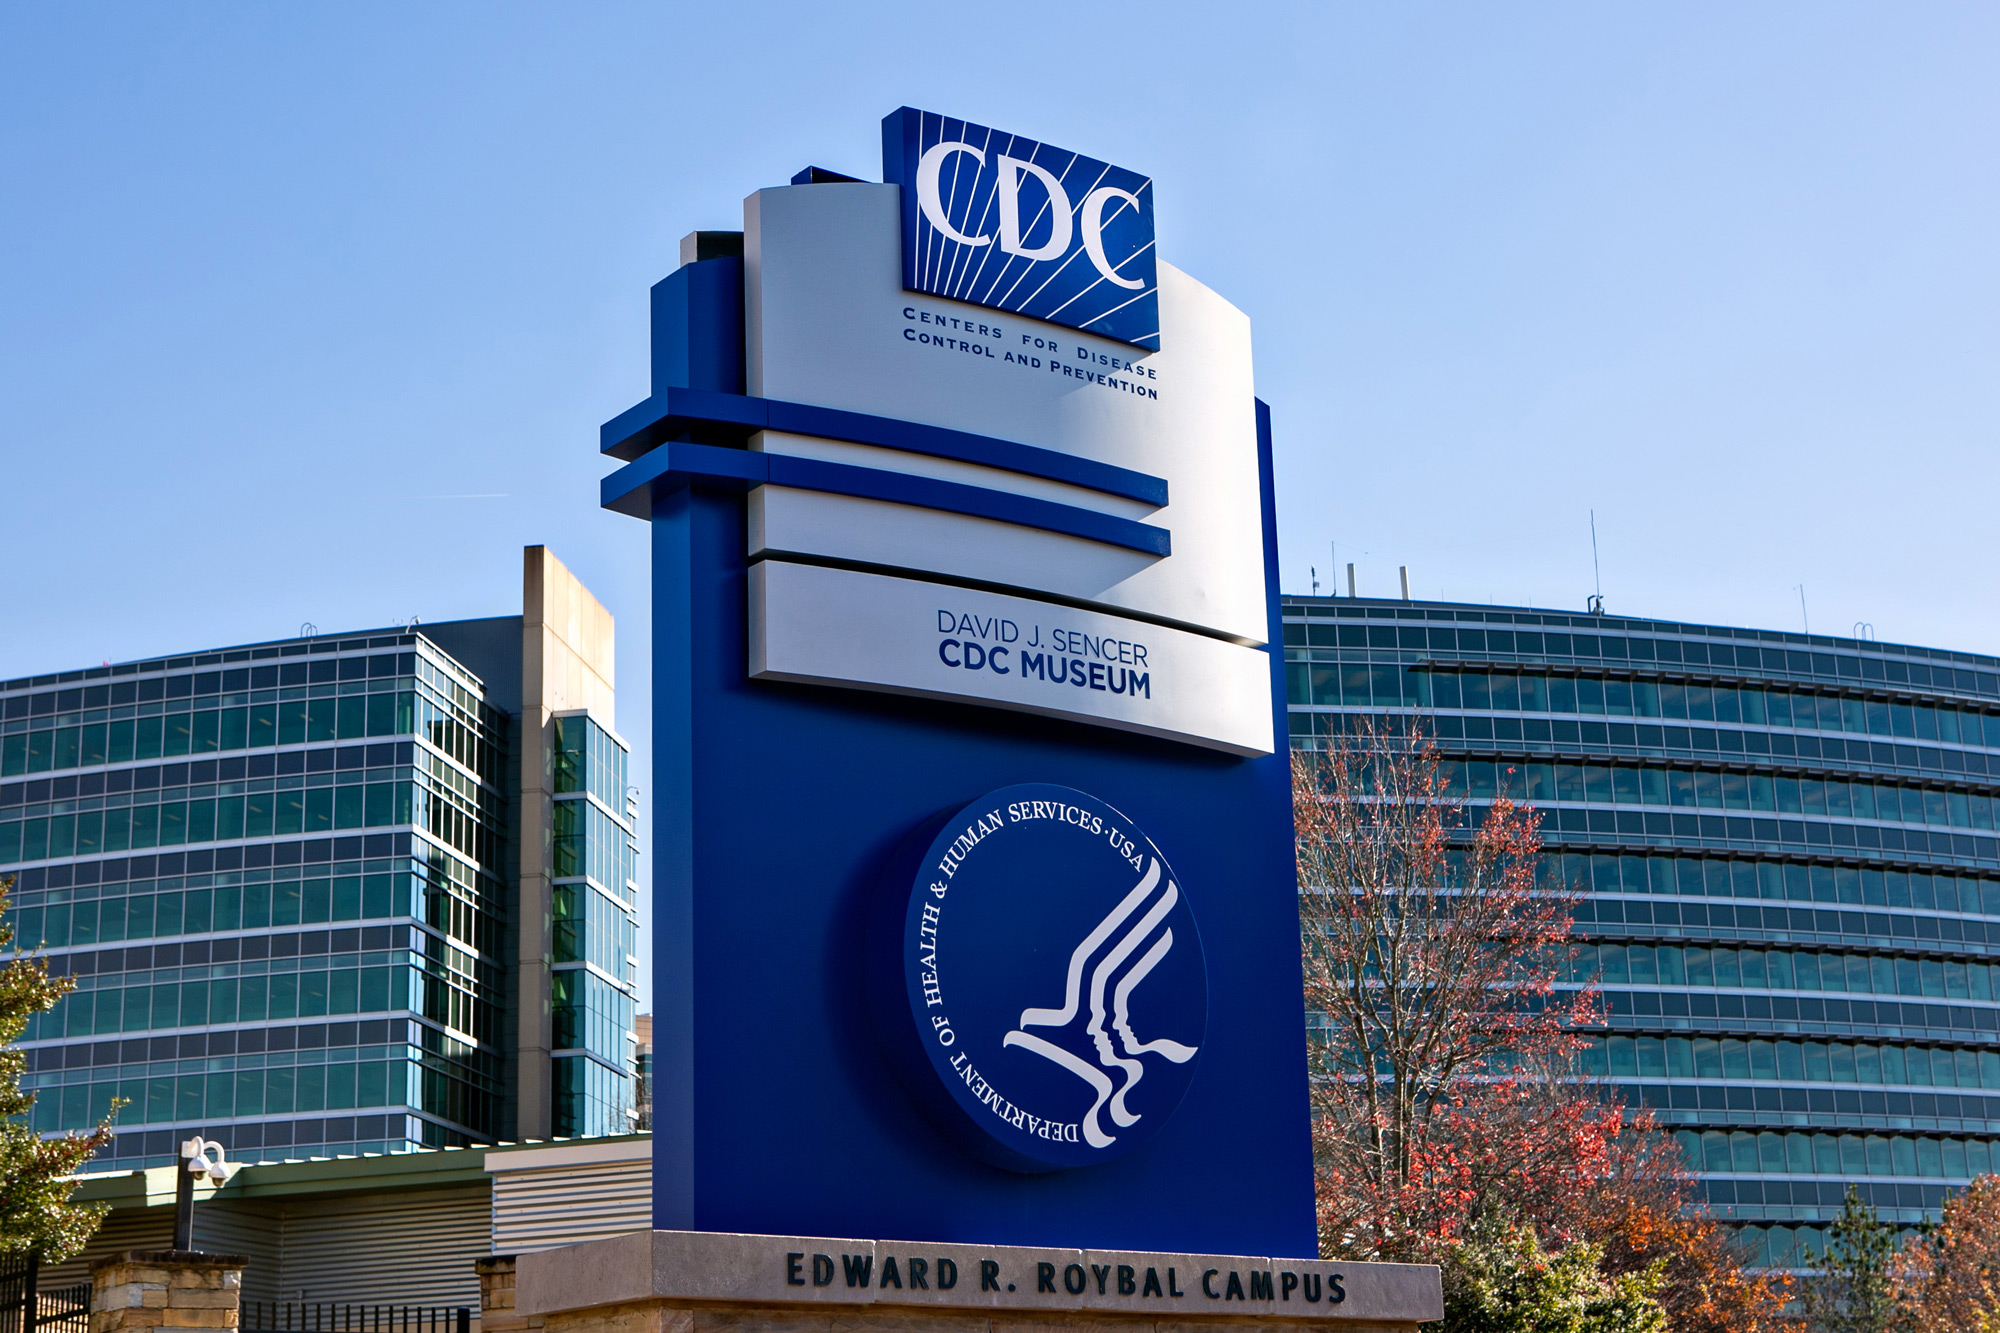 The Centers for Disease Control and Prevention is seen in Atlanta on December 10, 2020.